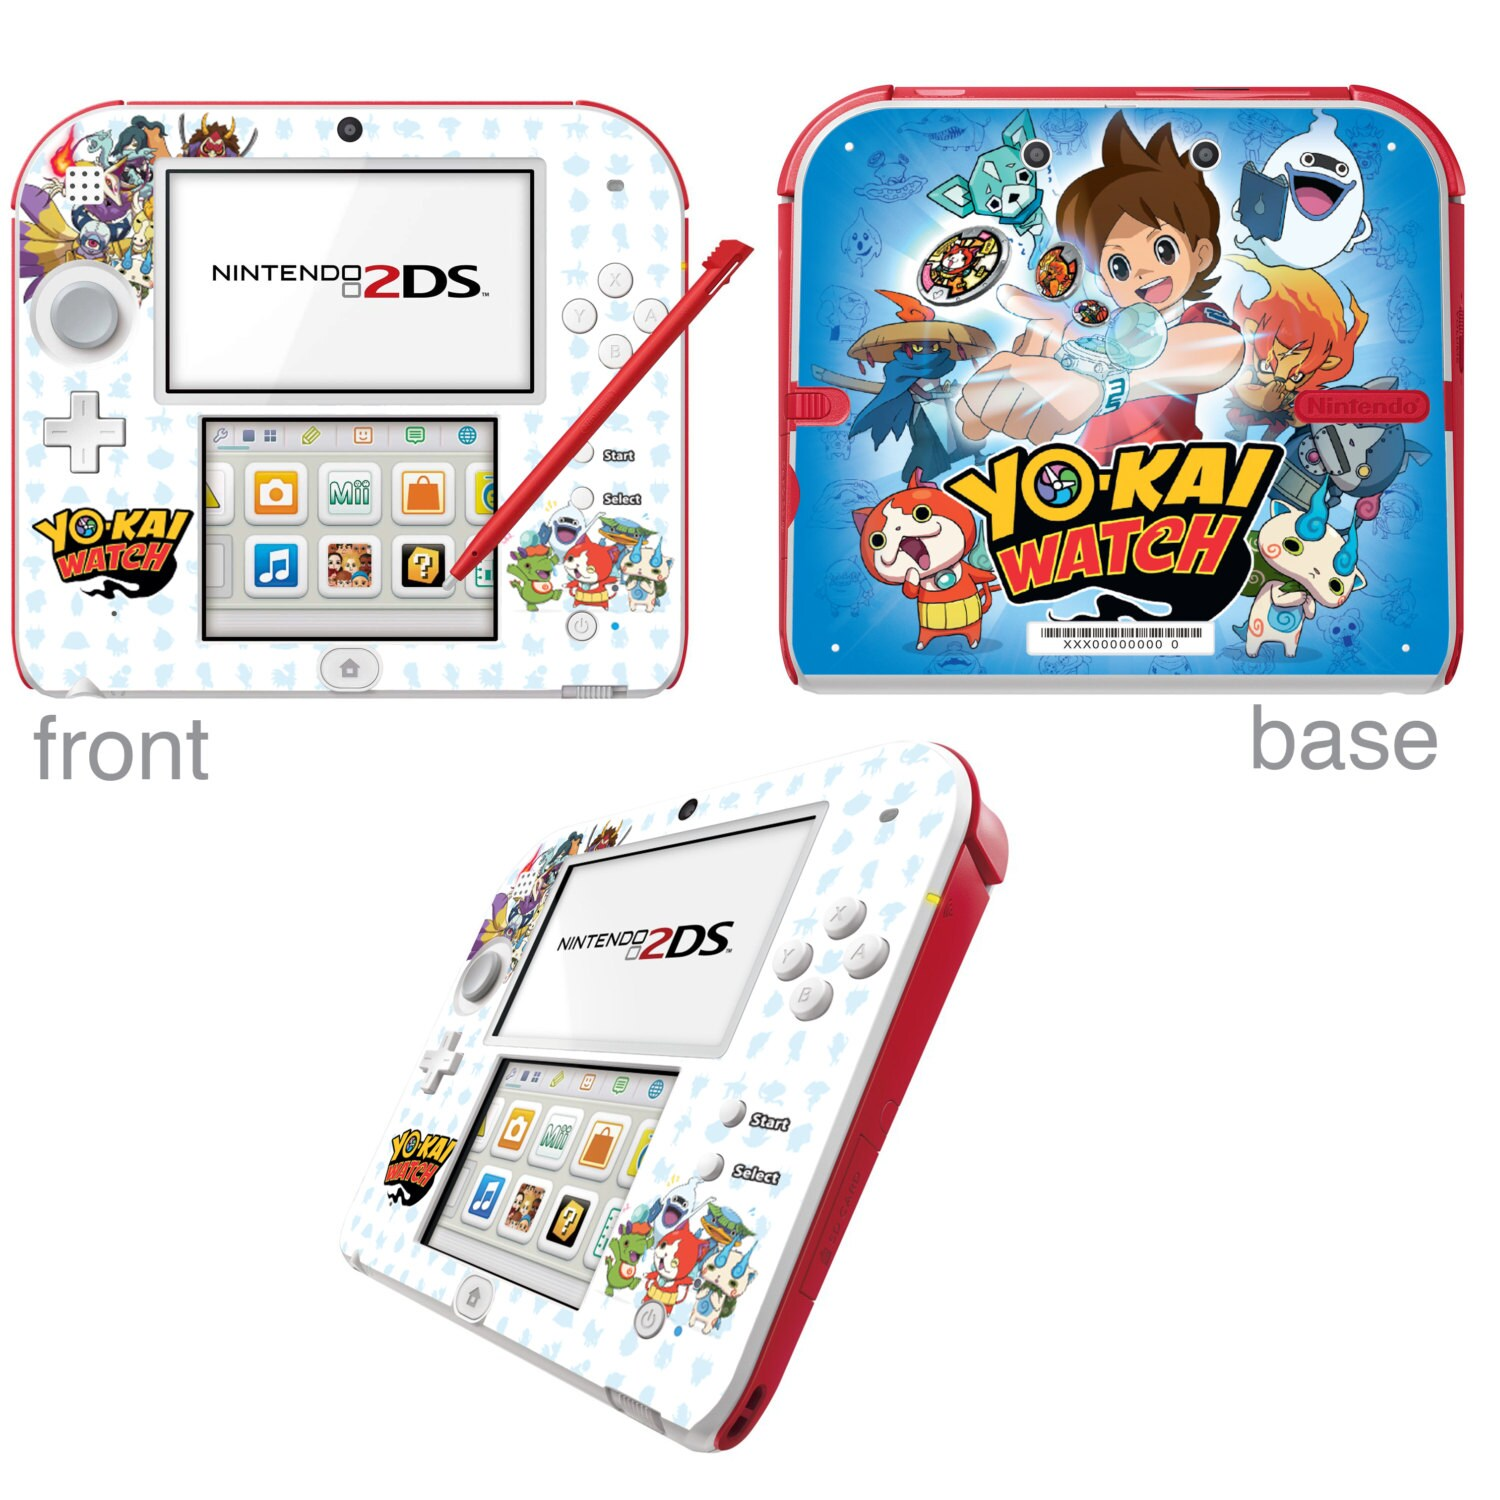 YoKai Watch Vinyl Skin Sticker for Nintendo DS liteDSiDSi xl3DS3DS xlNew 3DS cstickNew 3DS xl cstick2DS